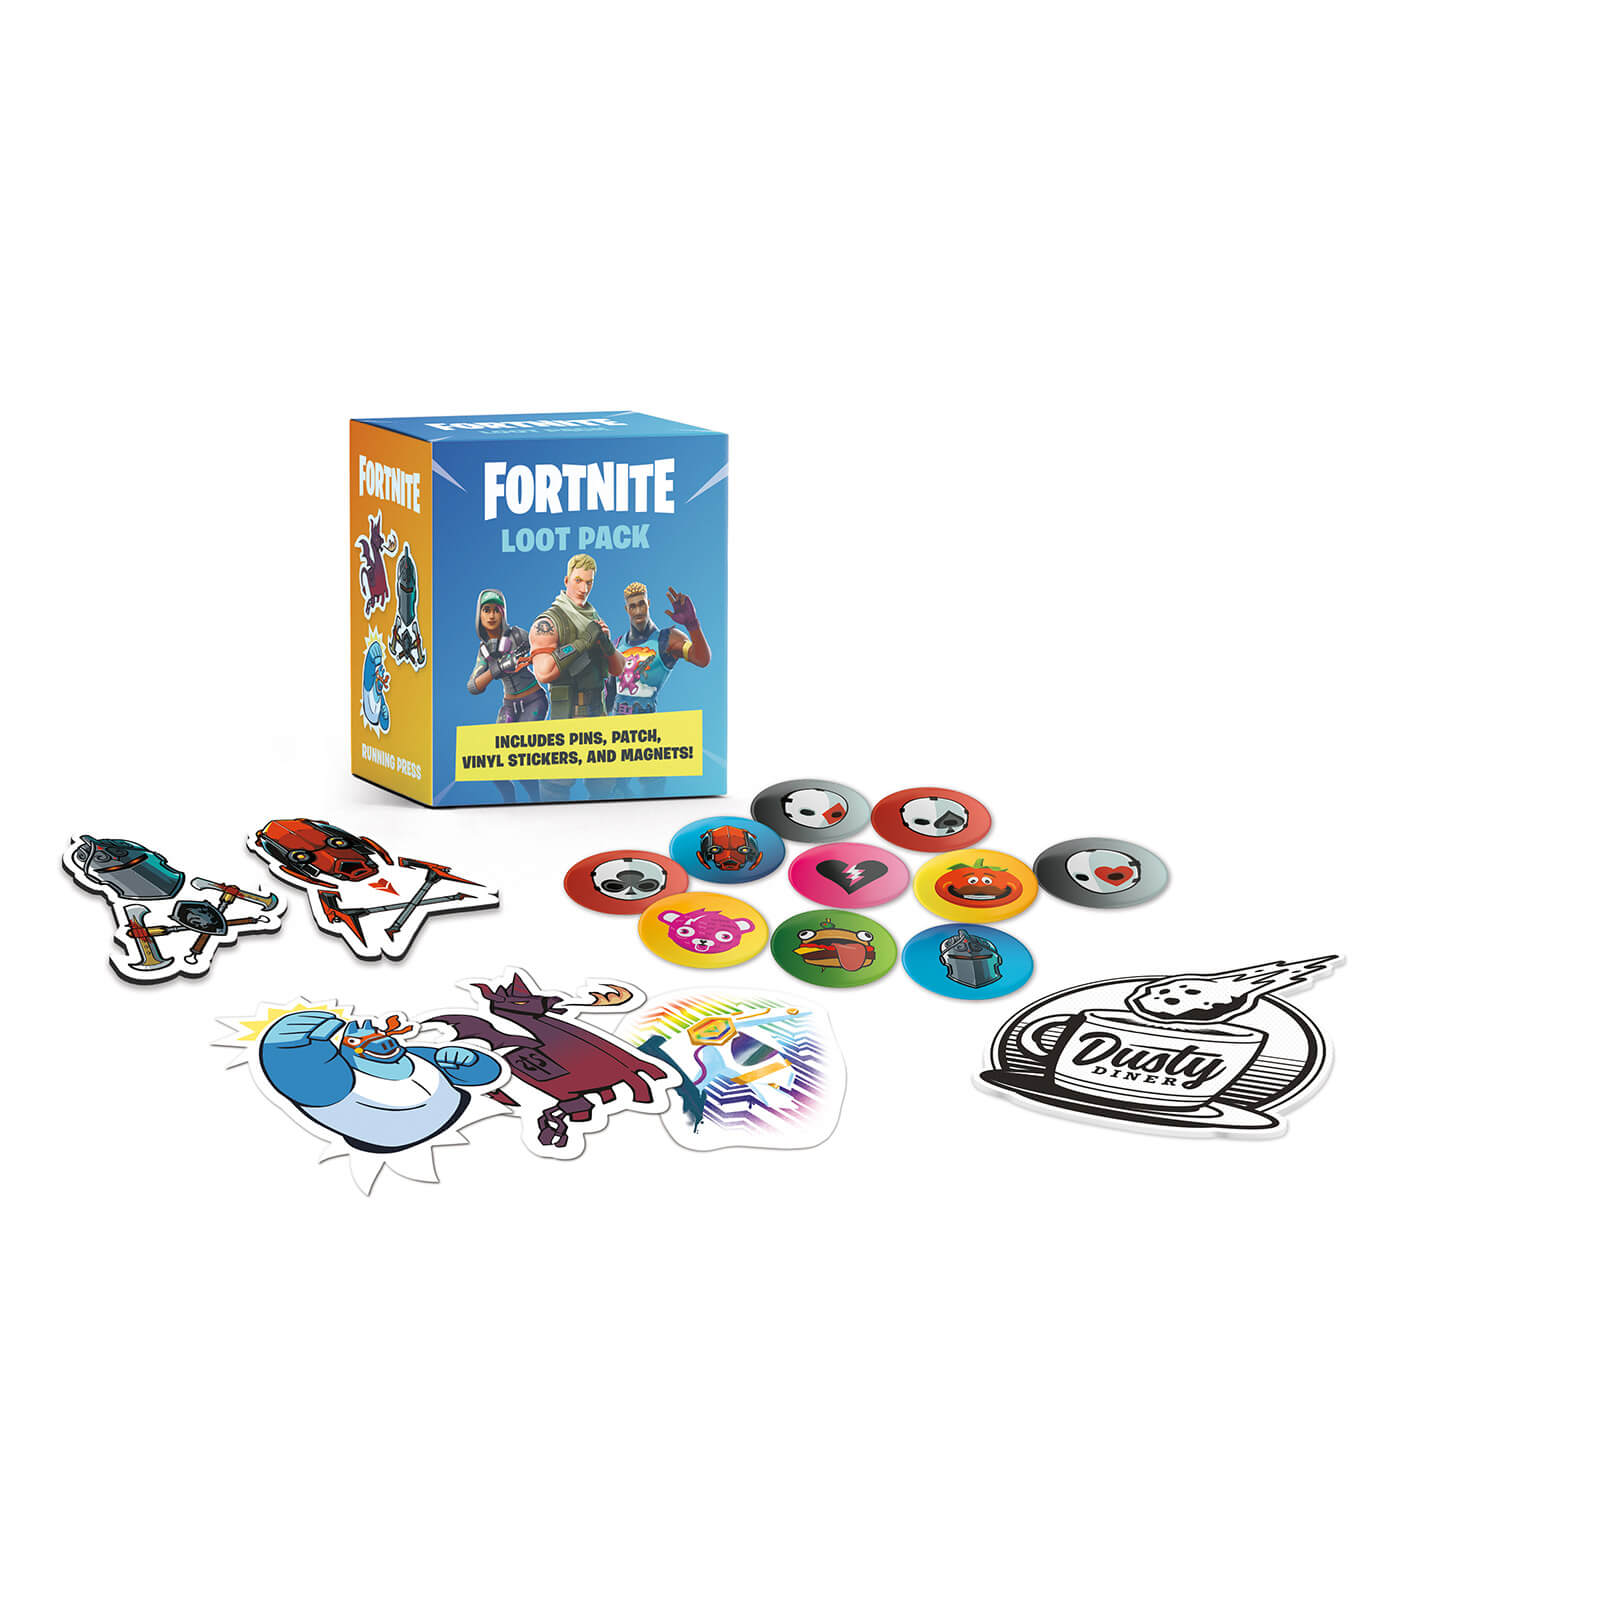 FORTNITE (Official) Loot Pack